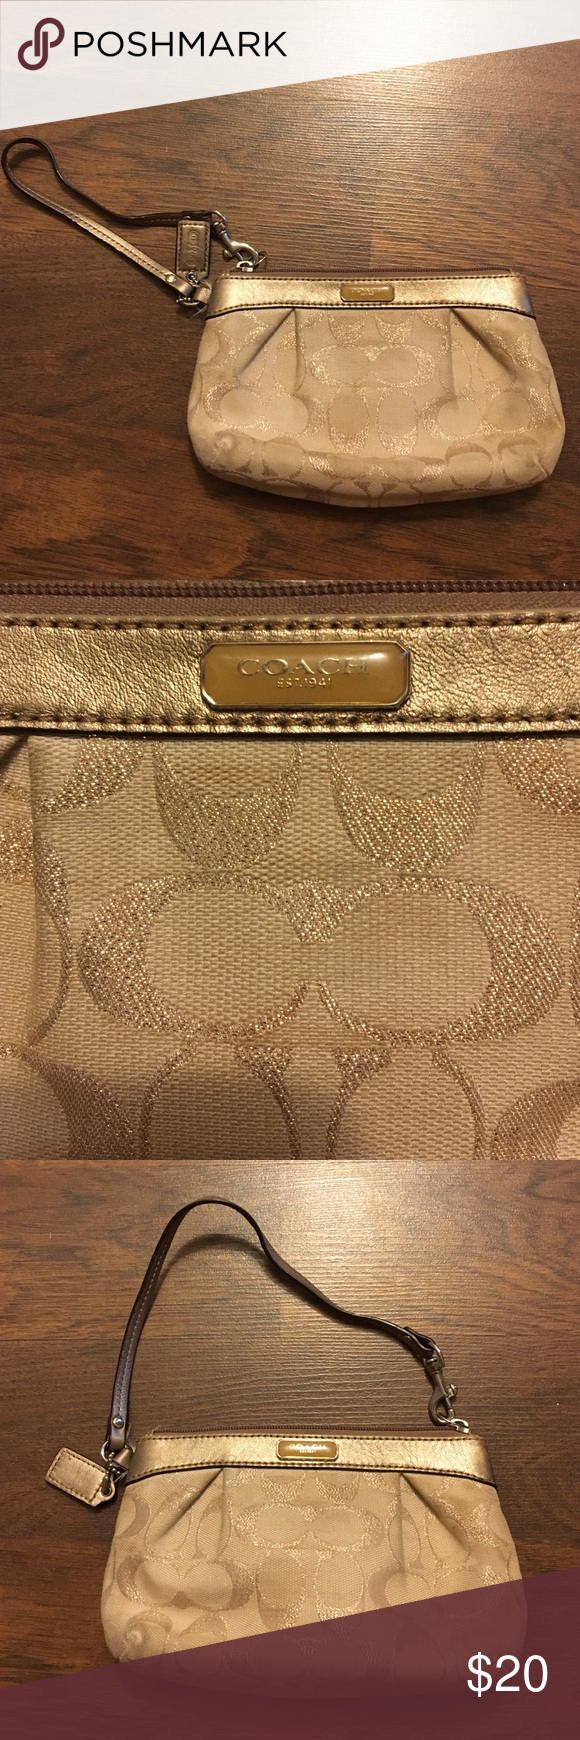 Coach Wristlet Authentic Coach Wristlet, only used a few times Coach Bags Clutches & Wristlets